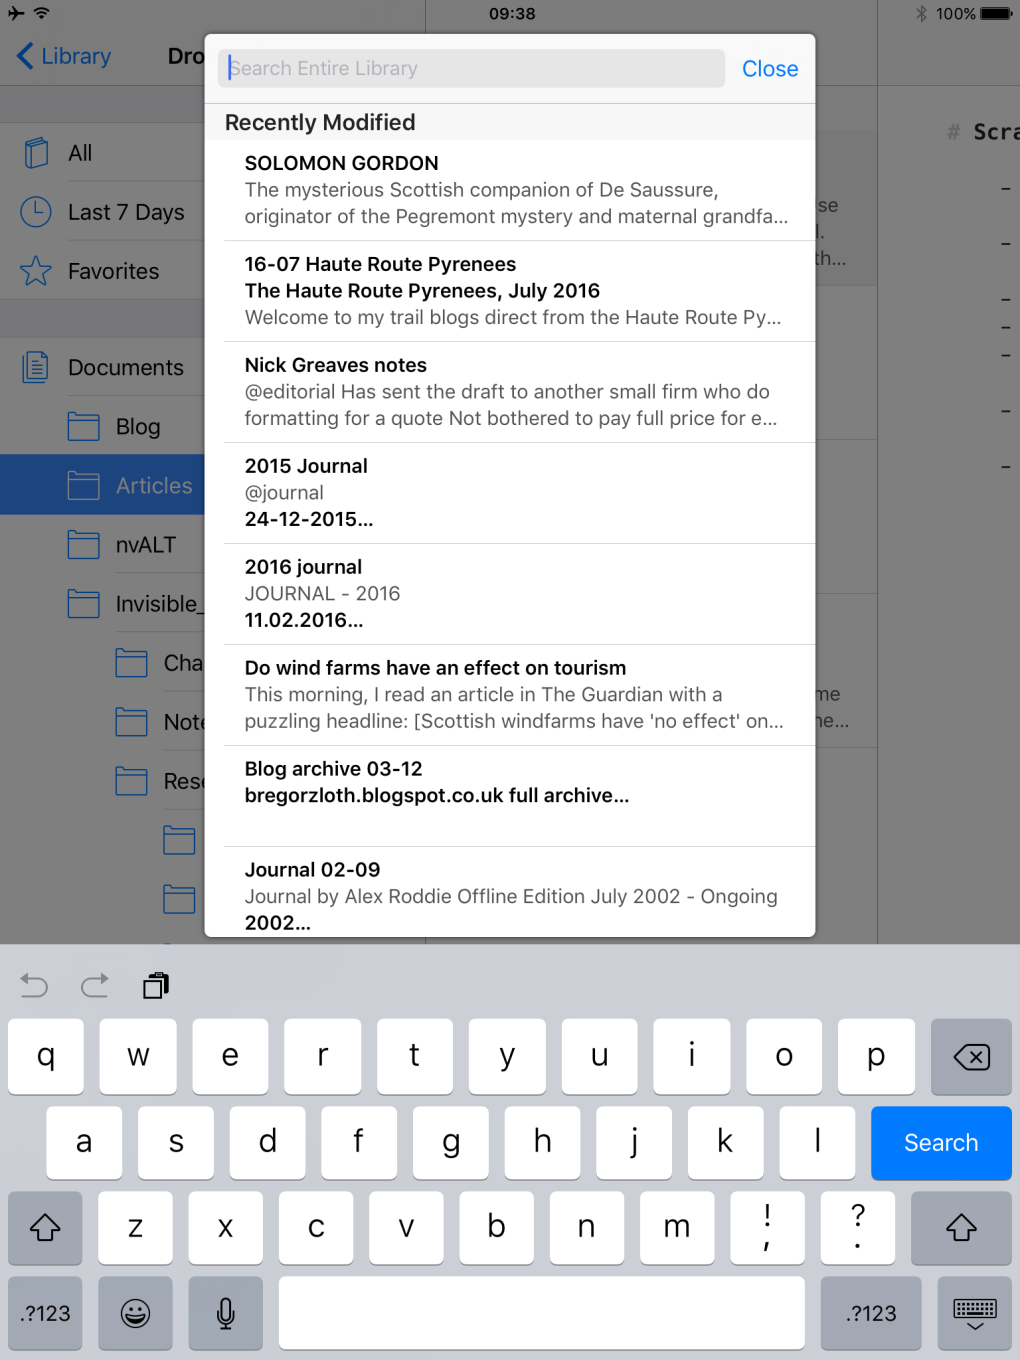 Global search dialogue on iOS